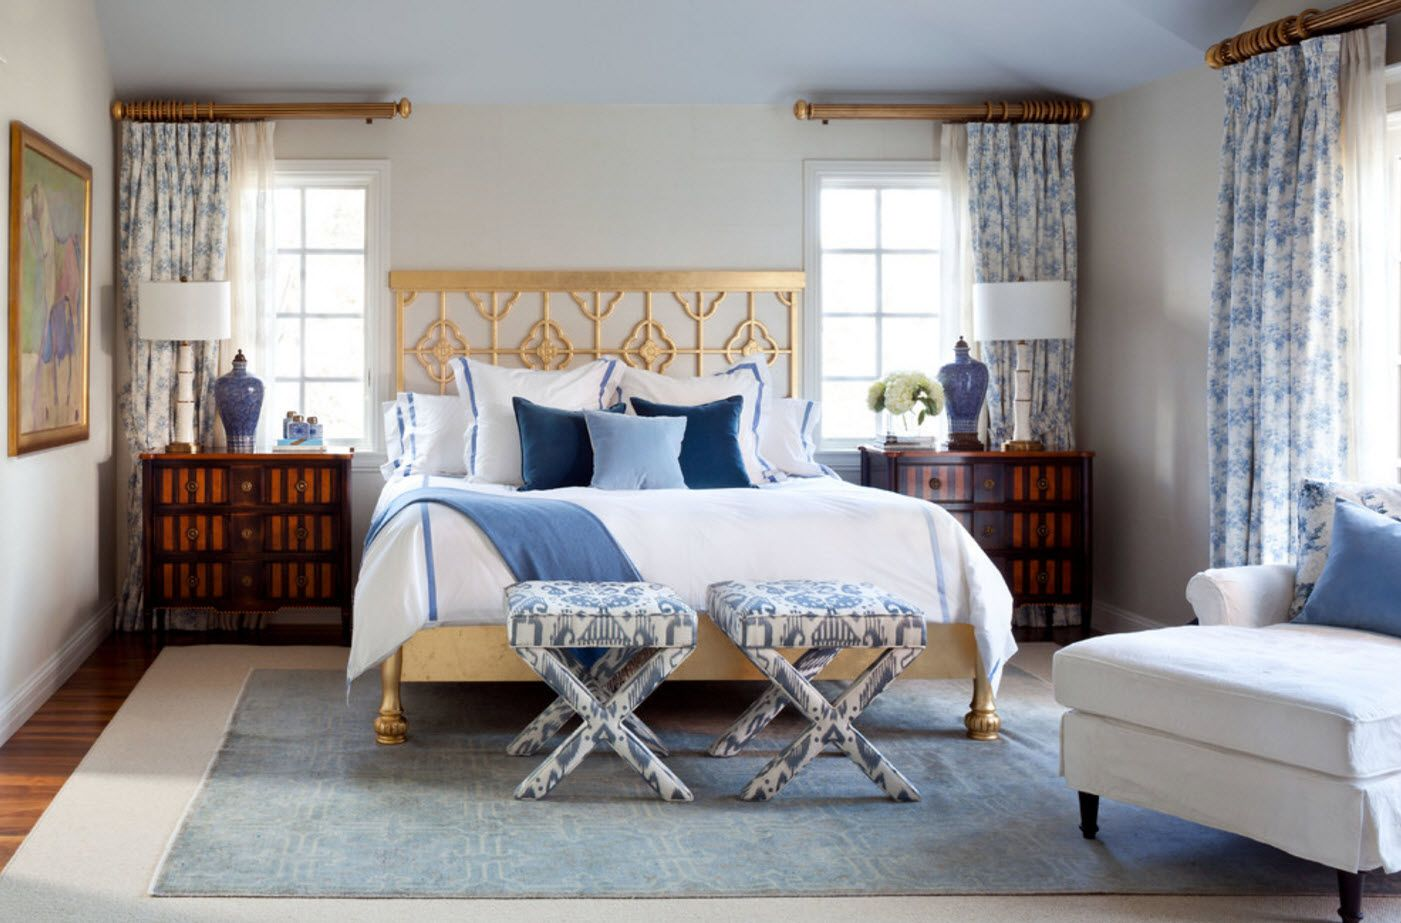 White and golden color scheme of the classic furnished room